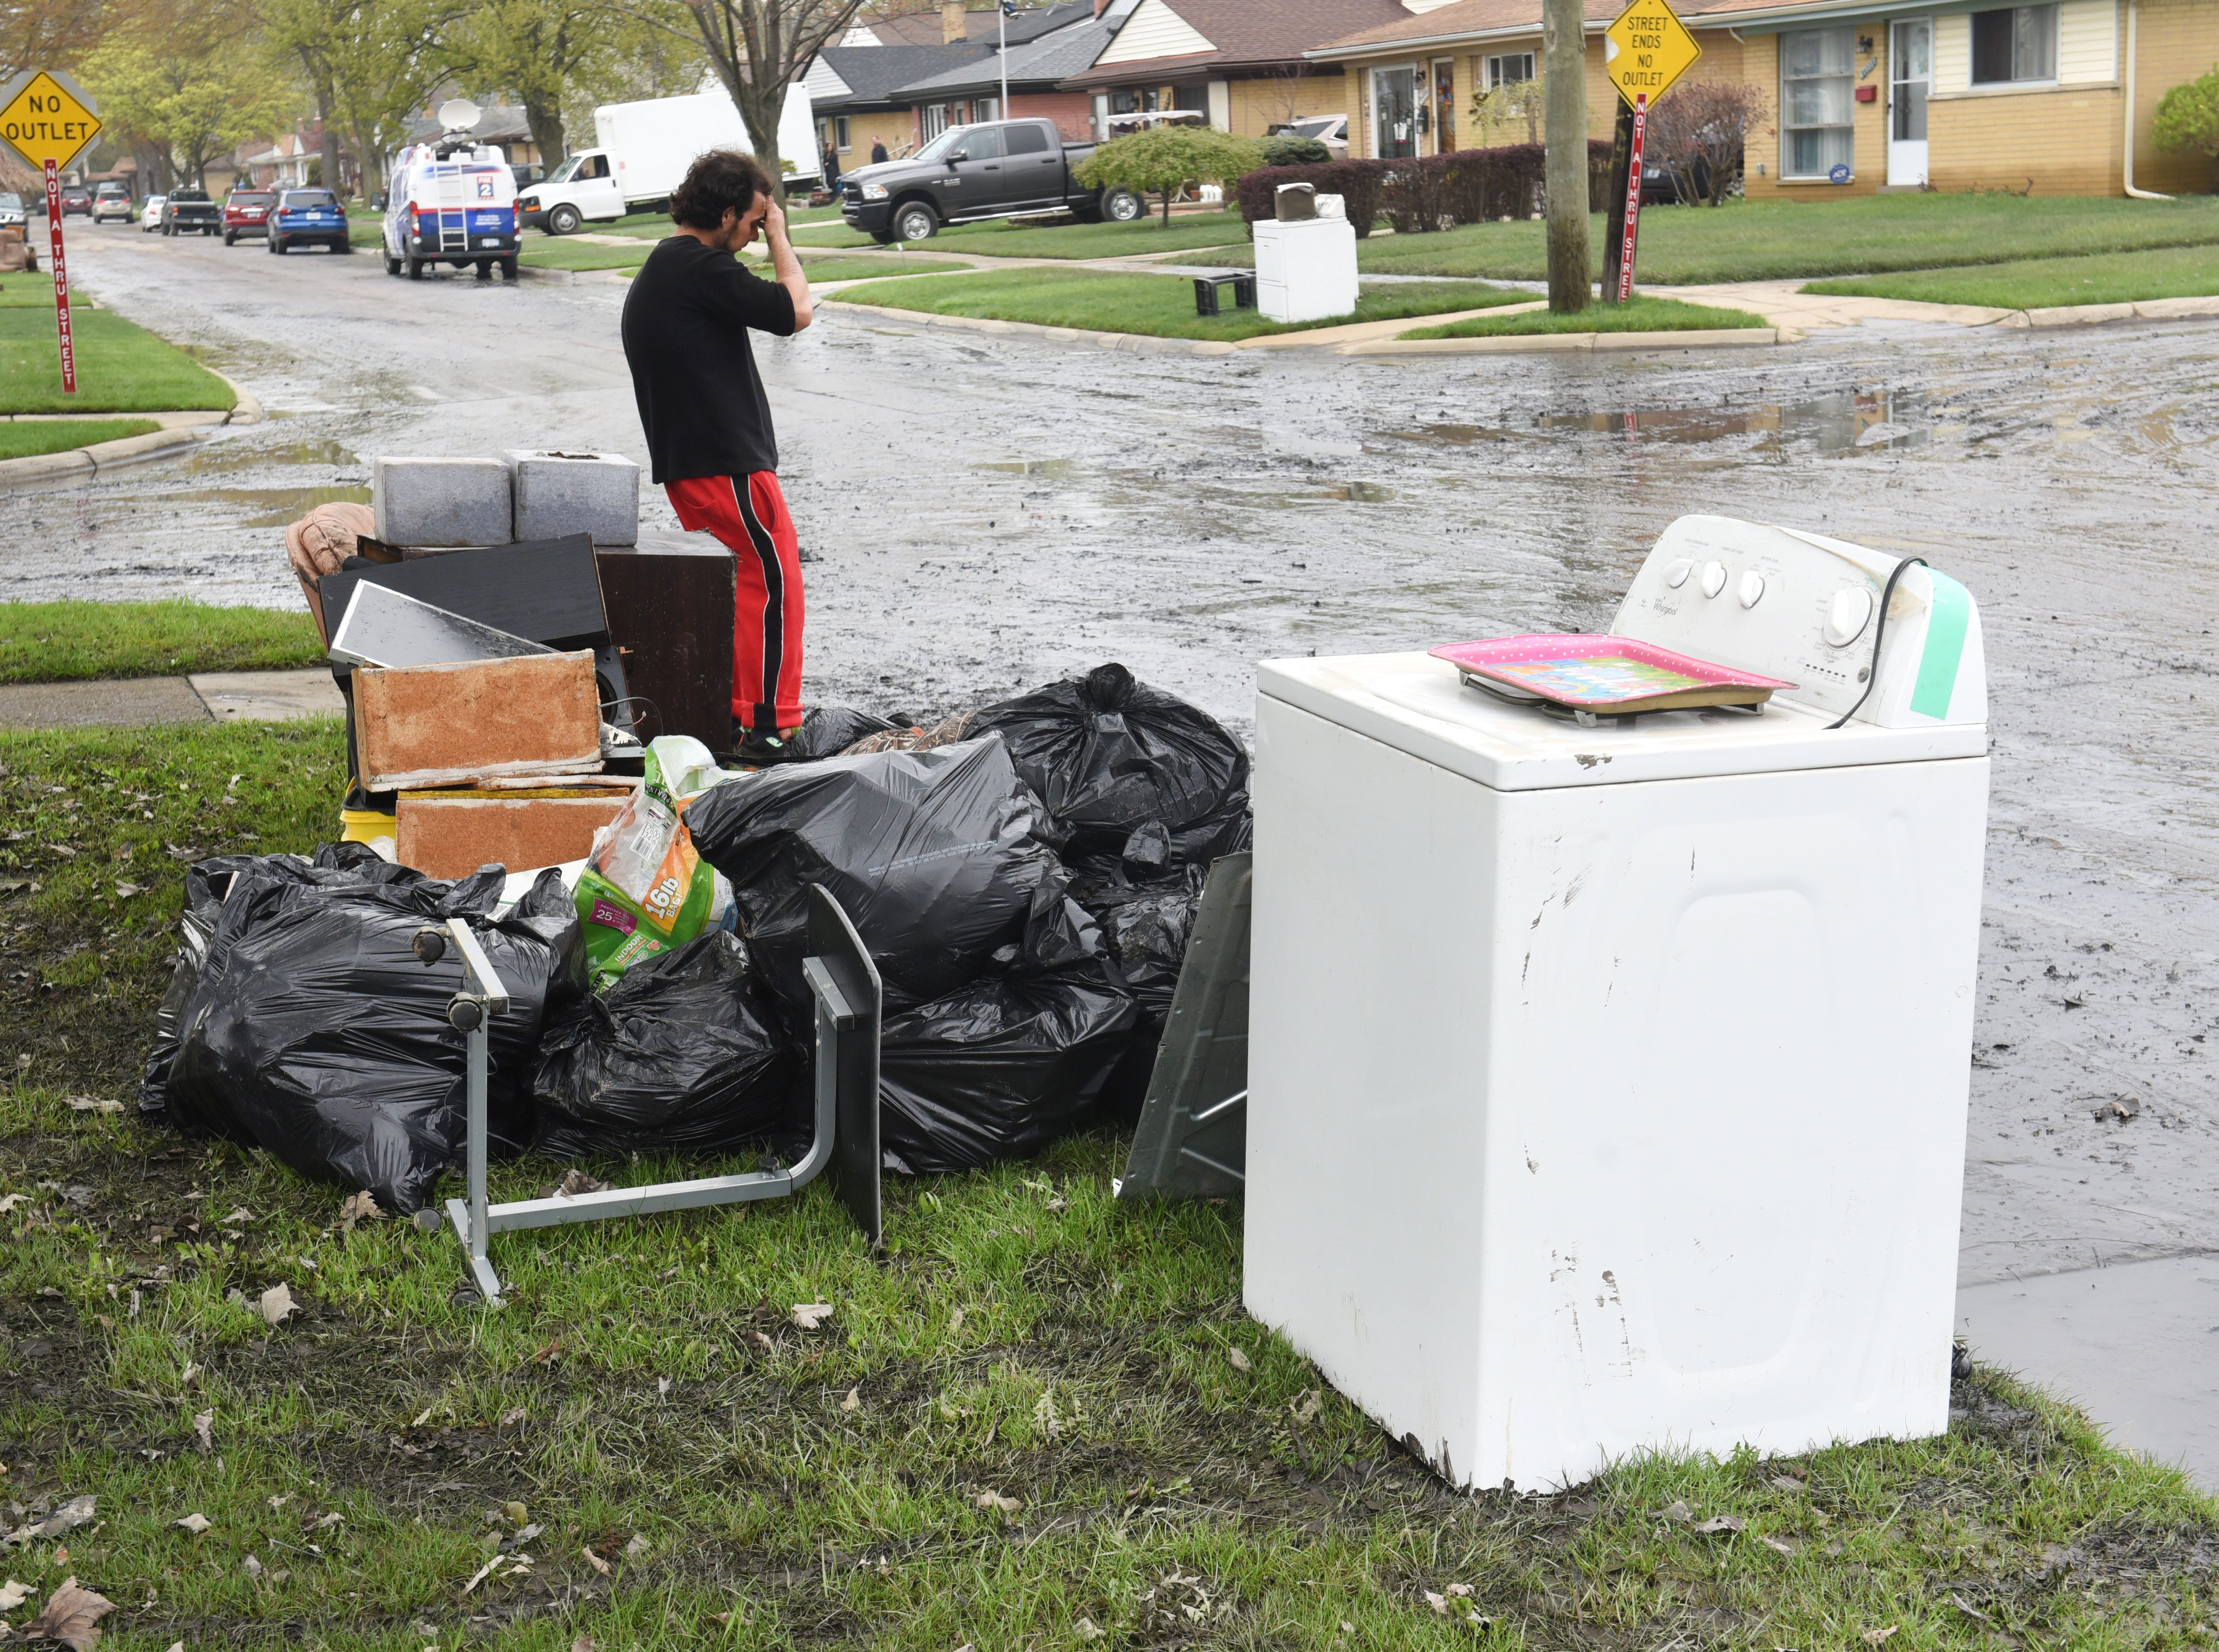 Dearborn Heights resident John Burbank can't believe the damage caused by floodwaters on Hanover Street, where basements were flooded and belongings ruined.